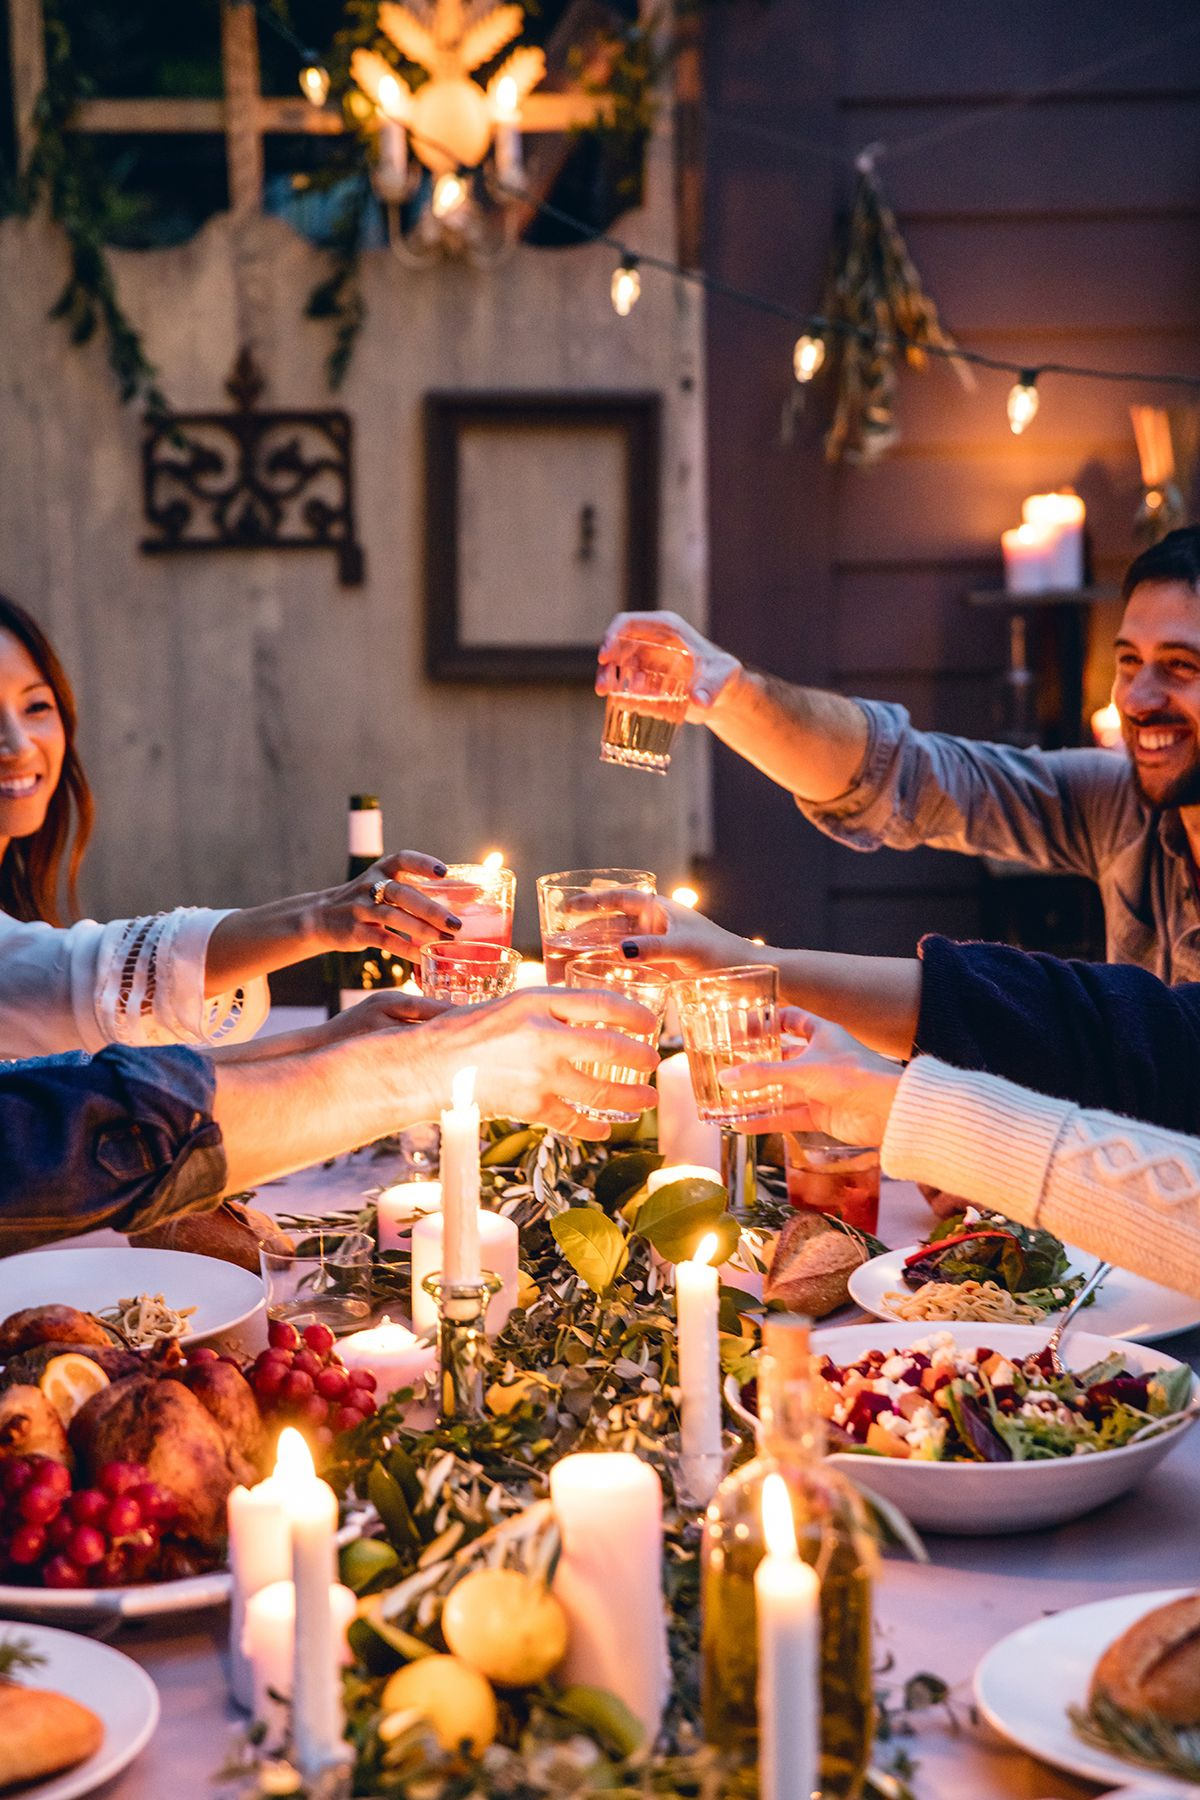 How To Host Friendsgiving On A Budget